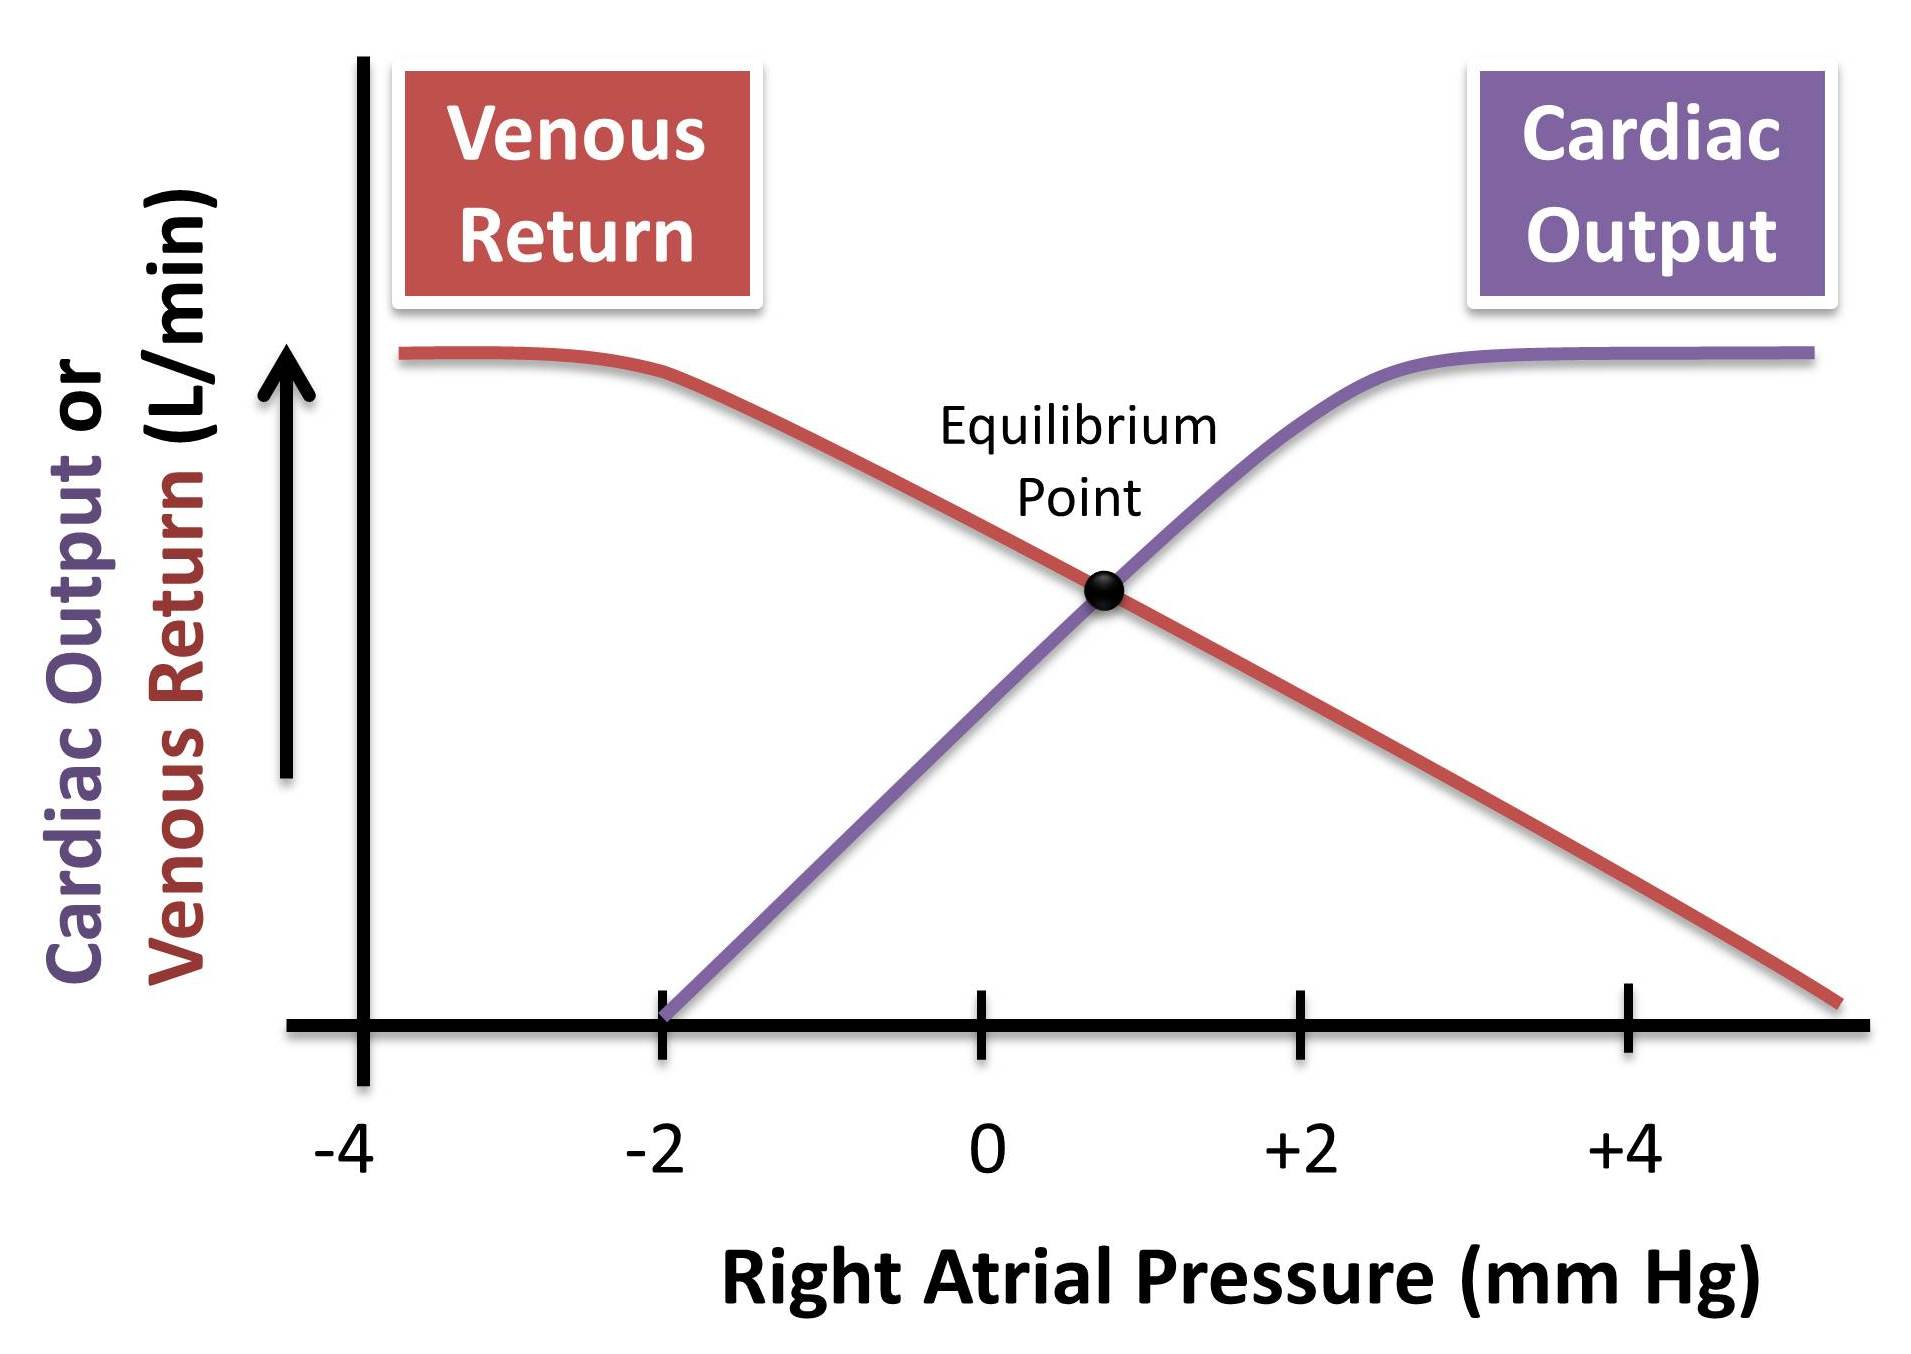 venous return and cardiac output relationship advice